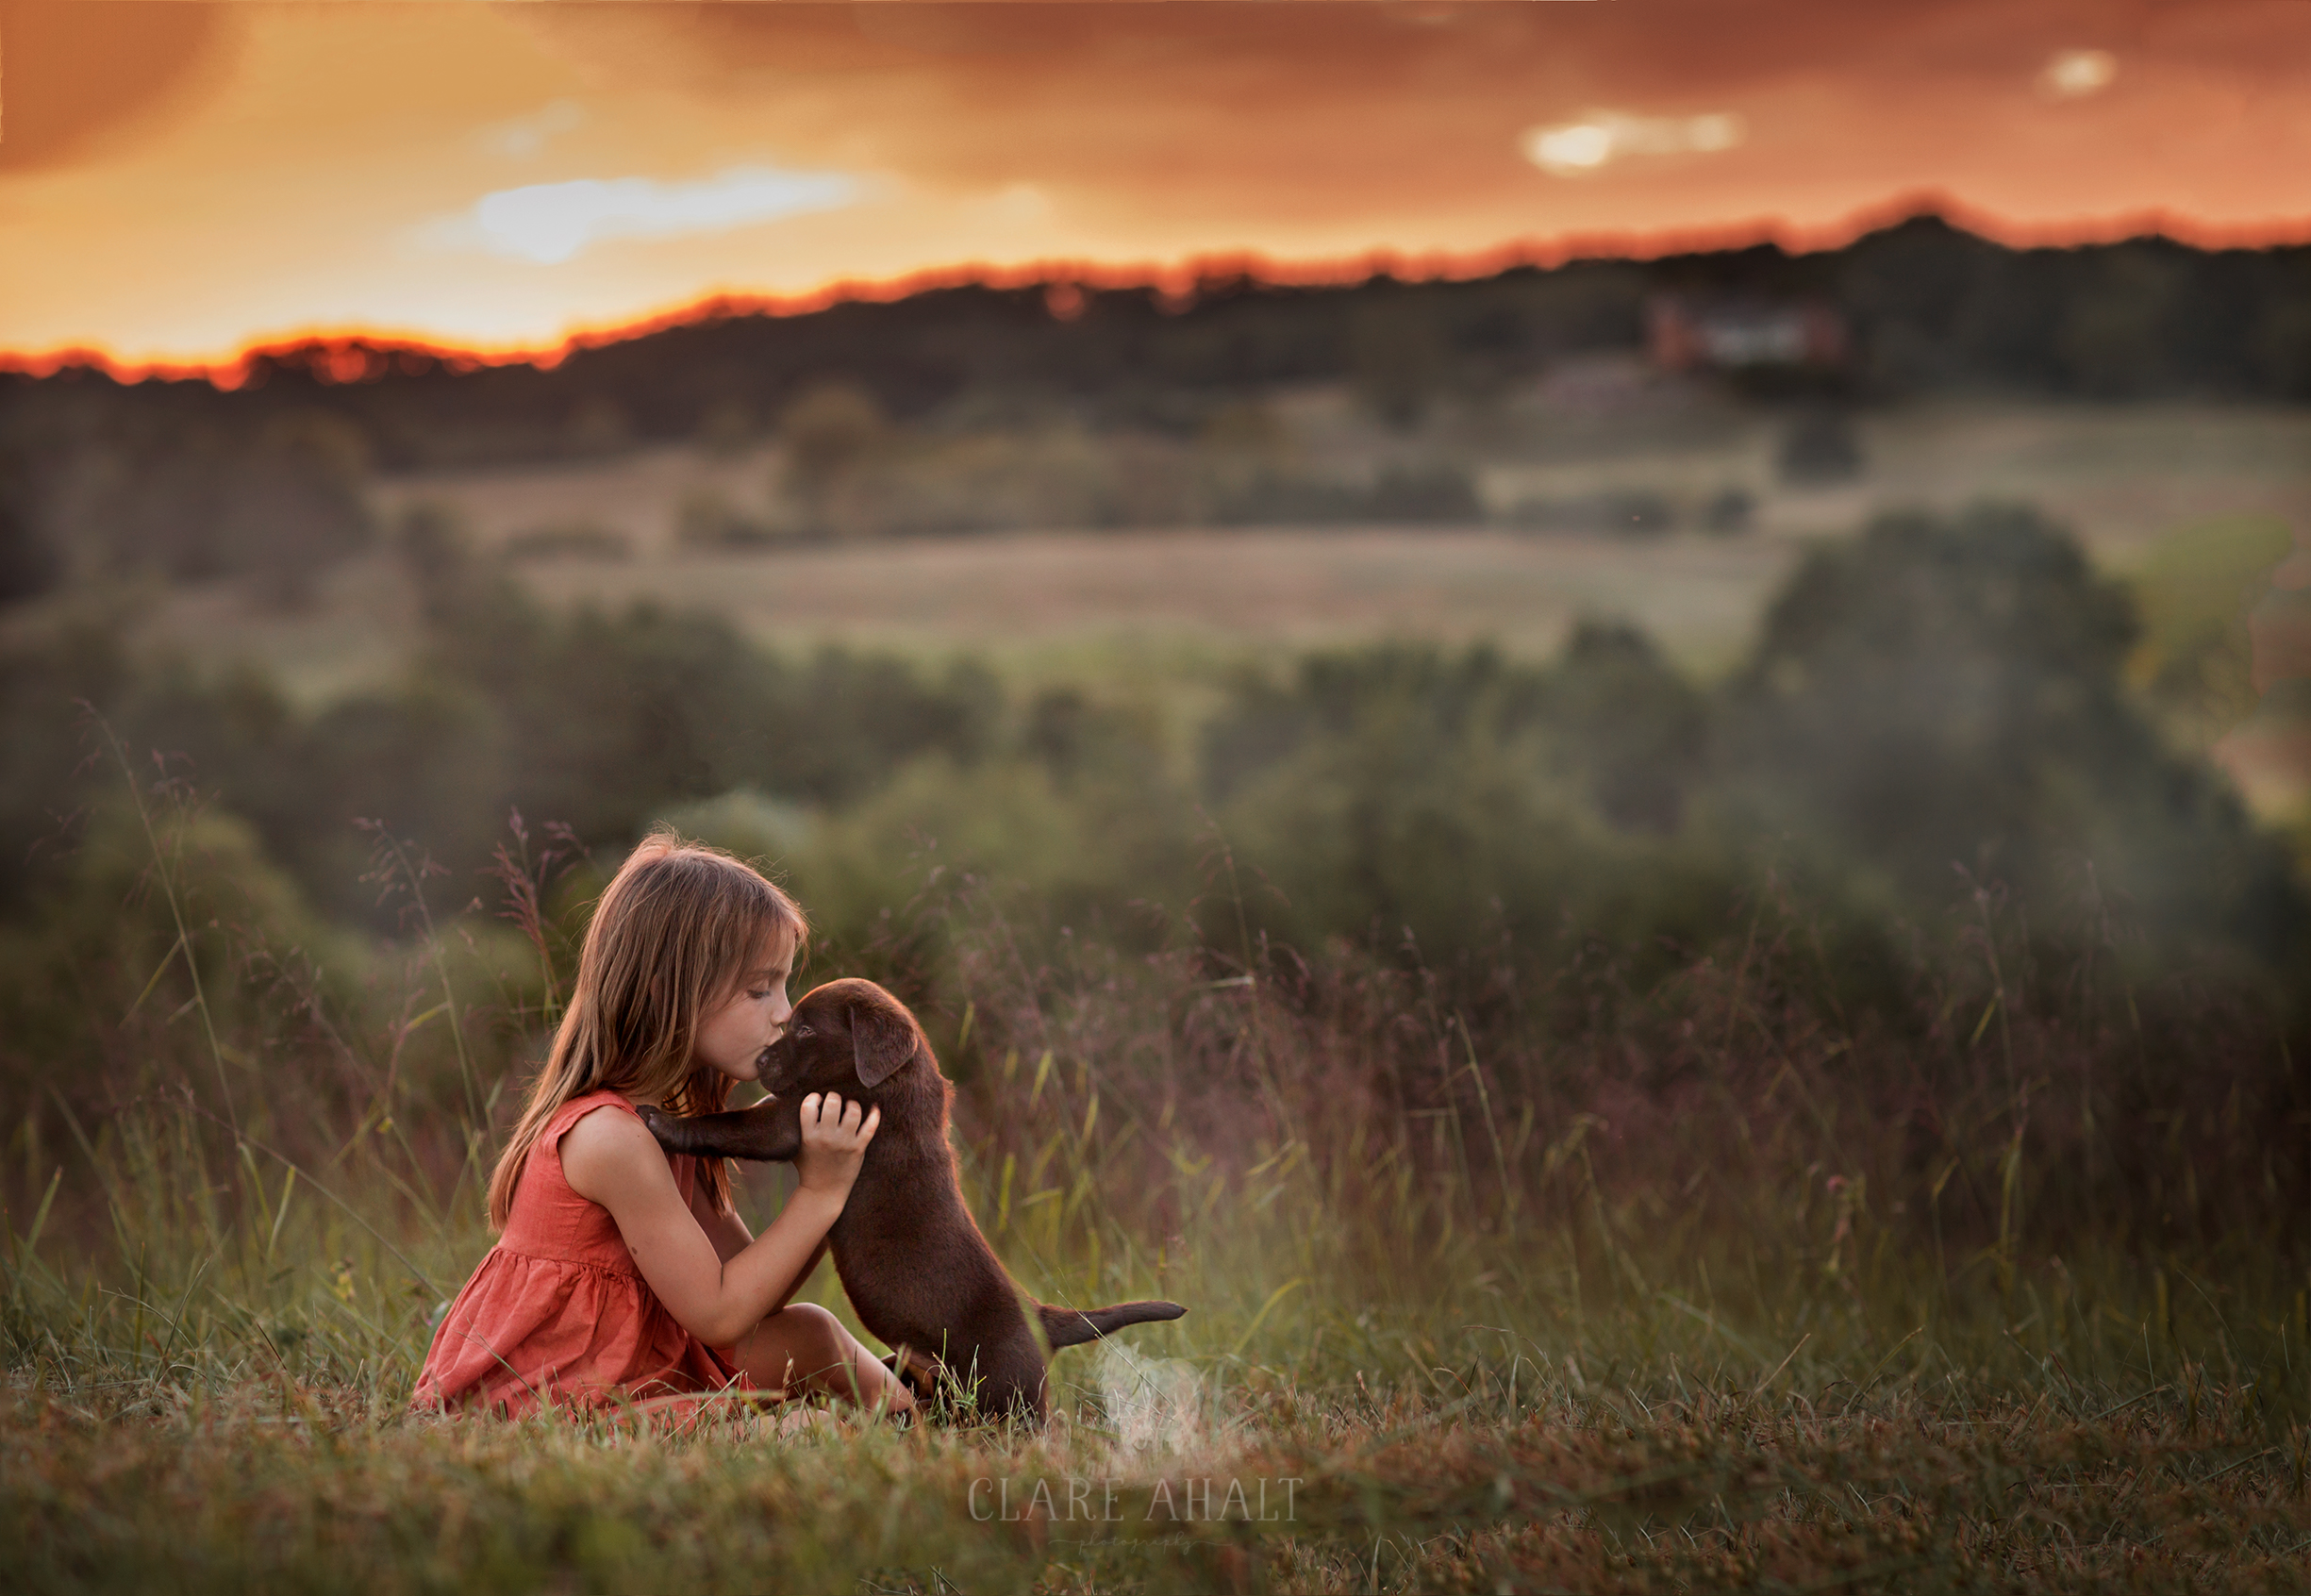 portrait of a little girl holding a chocolate lab puppy during sunset.  Photographed by Clare Ahalt Photography, a fine art portrait photographer located in Frederick, MD, serving Maryland, Northern Virginia and Washington DC.  Taken during a workshop held by Elena Shumilova on location in Northern Virginia